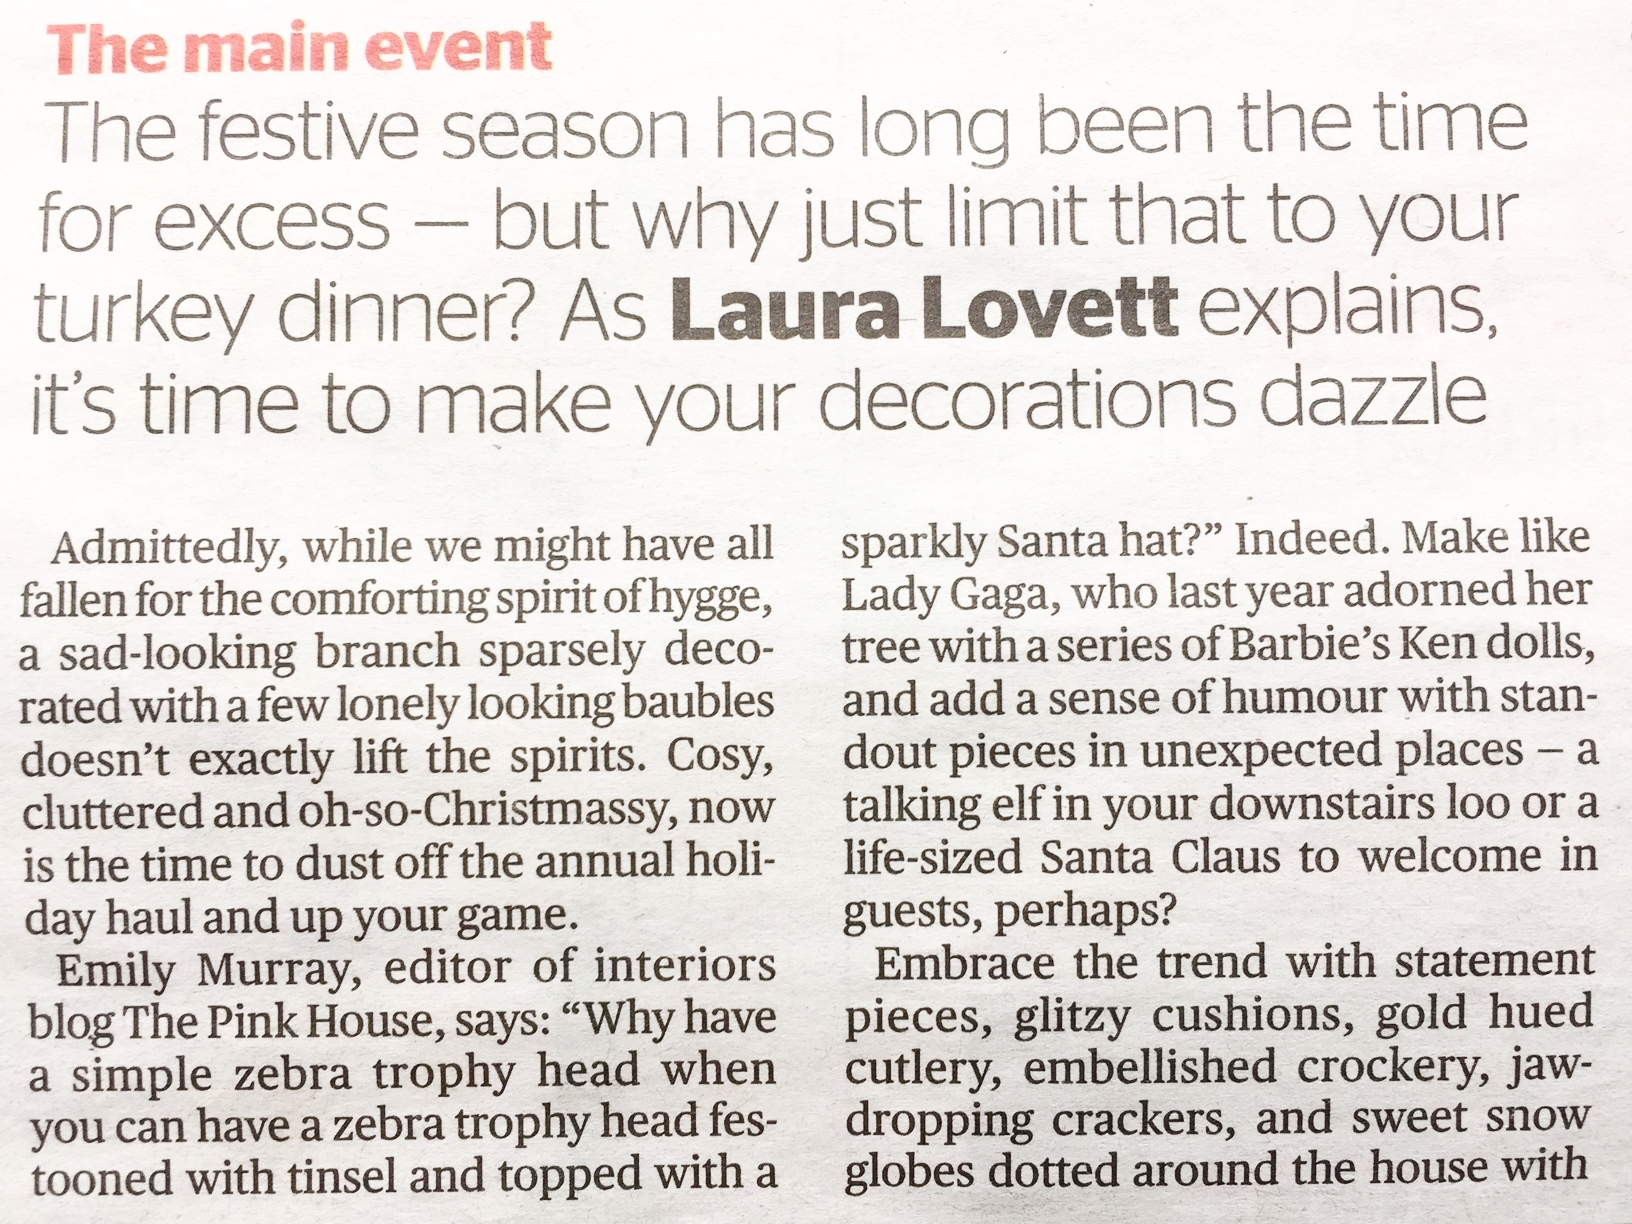 The Pink House's Emily Murray quoted in London Evening Standard